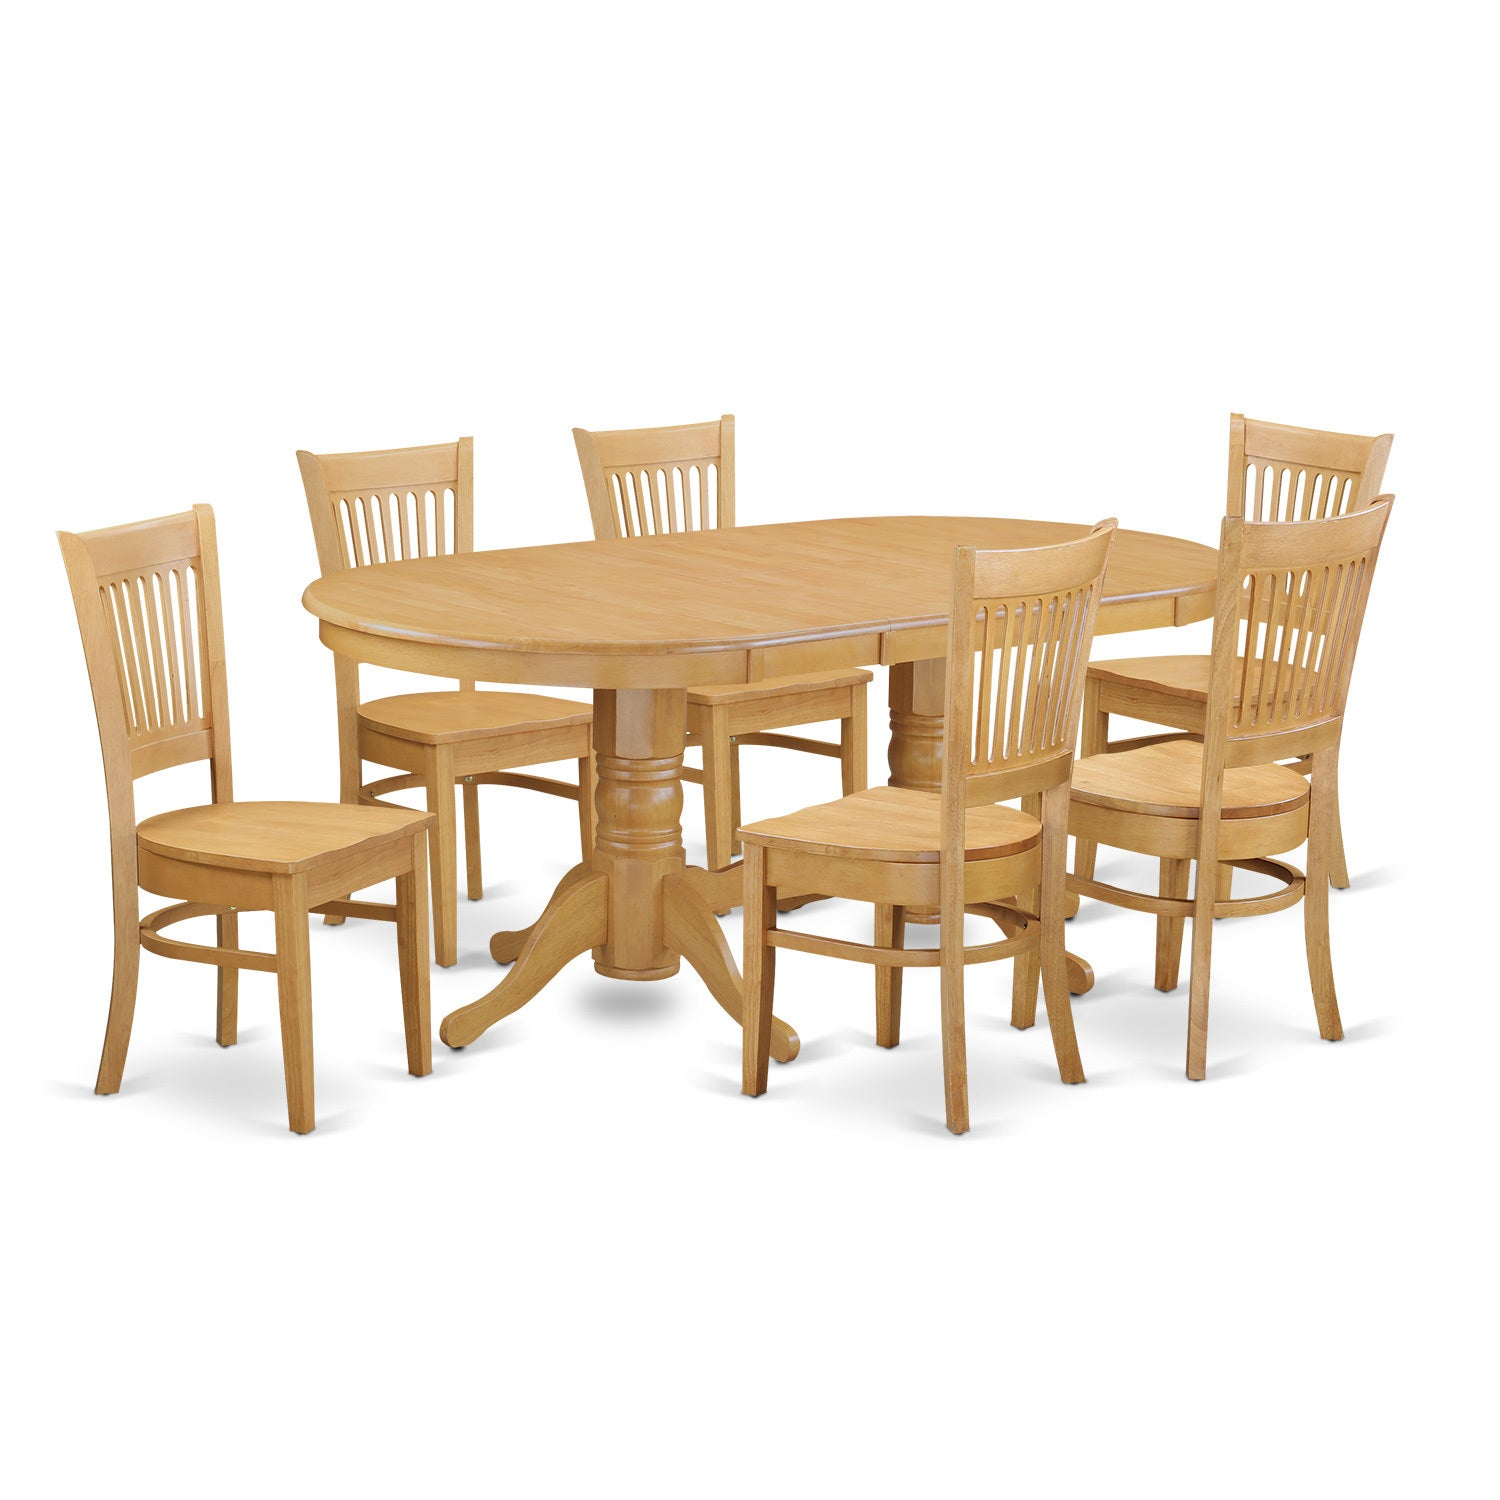 Oak-finish Rubberwood Dining Table With Leaf and 6 Chairs...